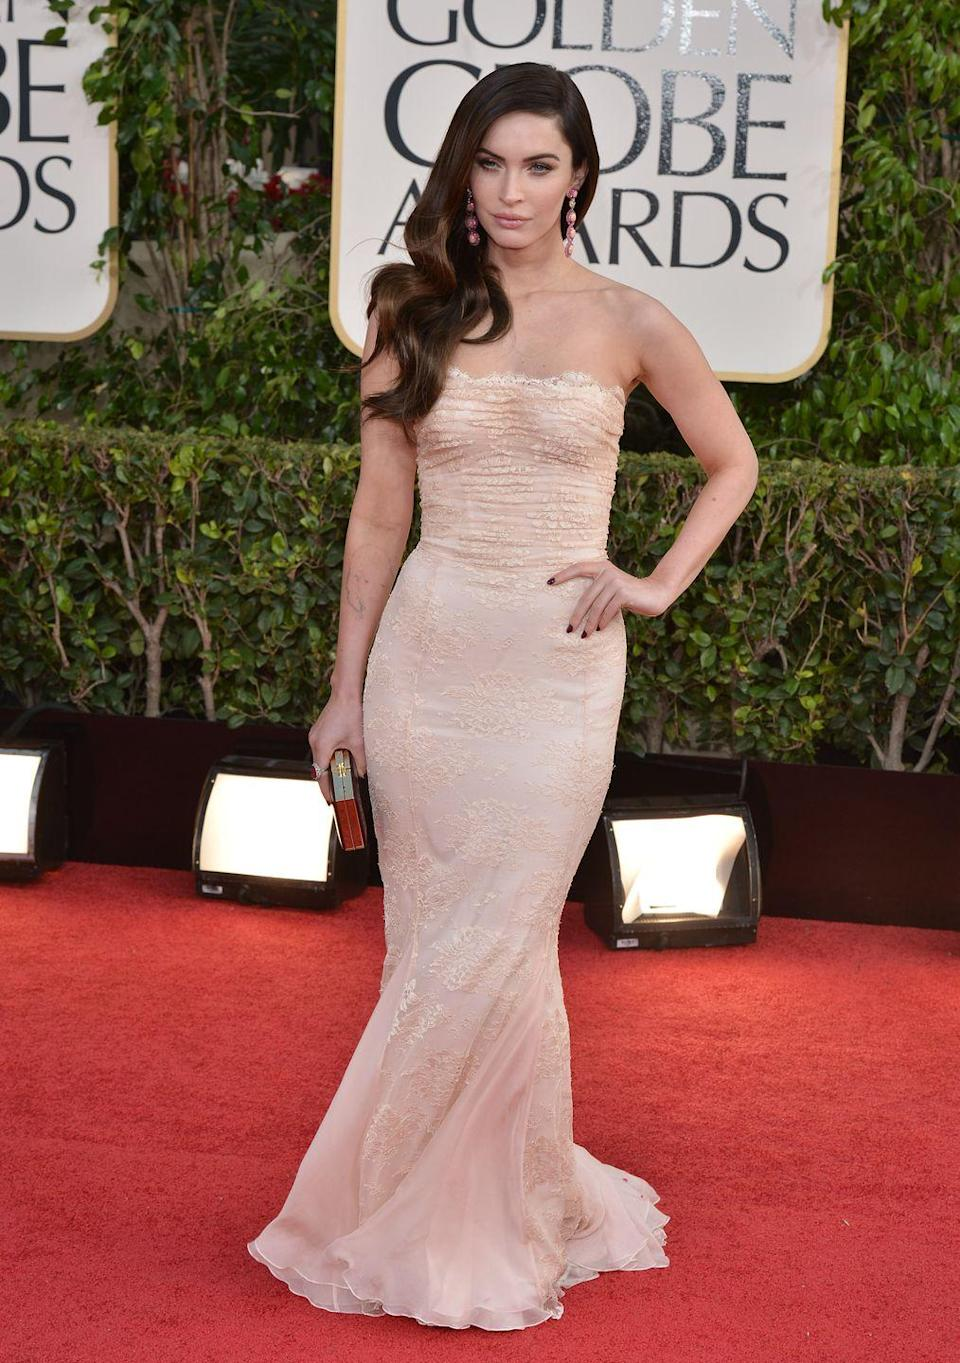 <p>The star wore a strapless ivory-coloured fishtail dress by Dolce & Gabbana to the event. </p>